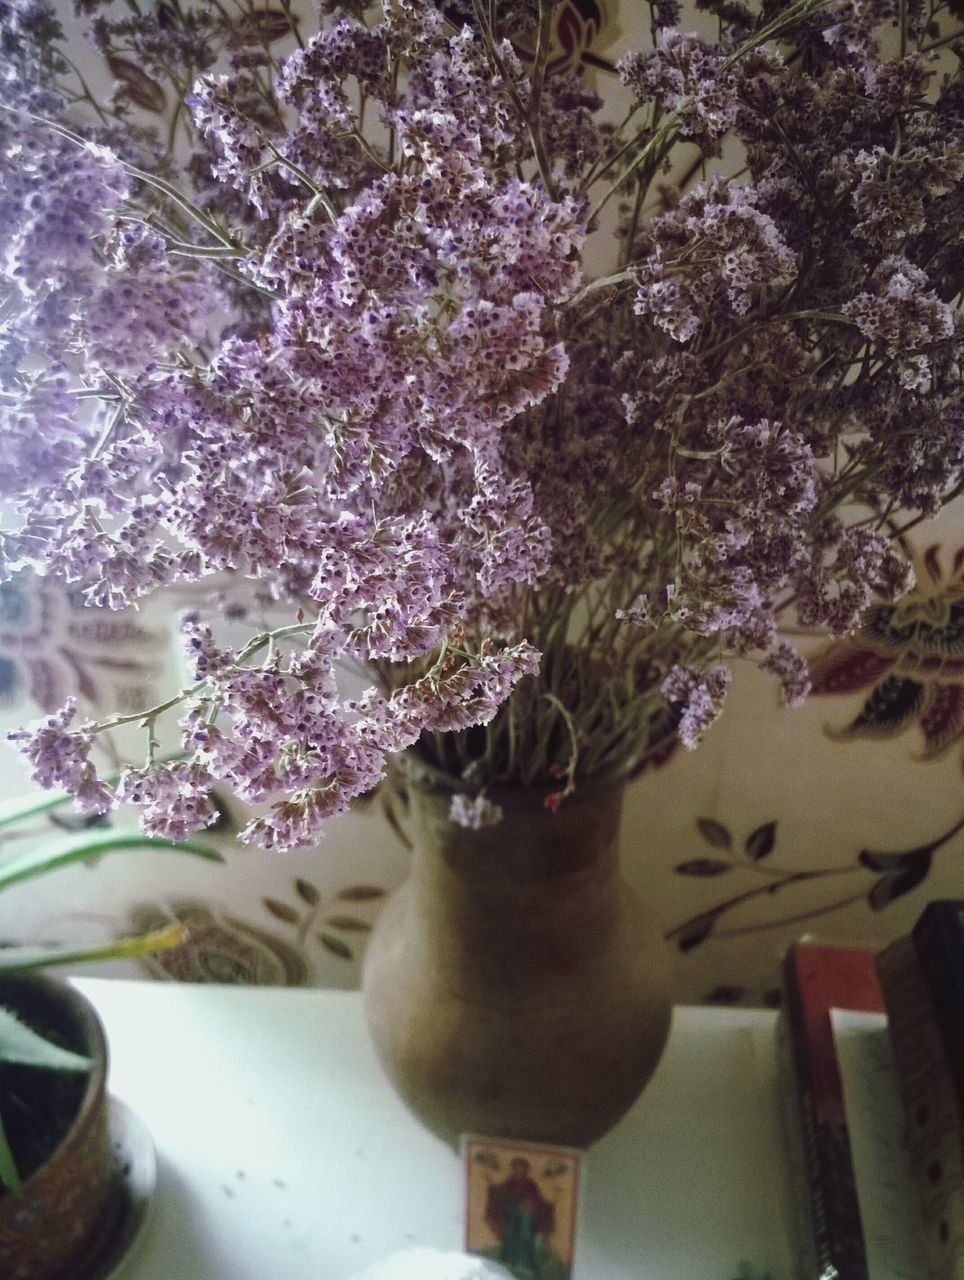 flower, vase, growth, indoors, no people, close-up, plant, fragility, day, tree, freshness, nature